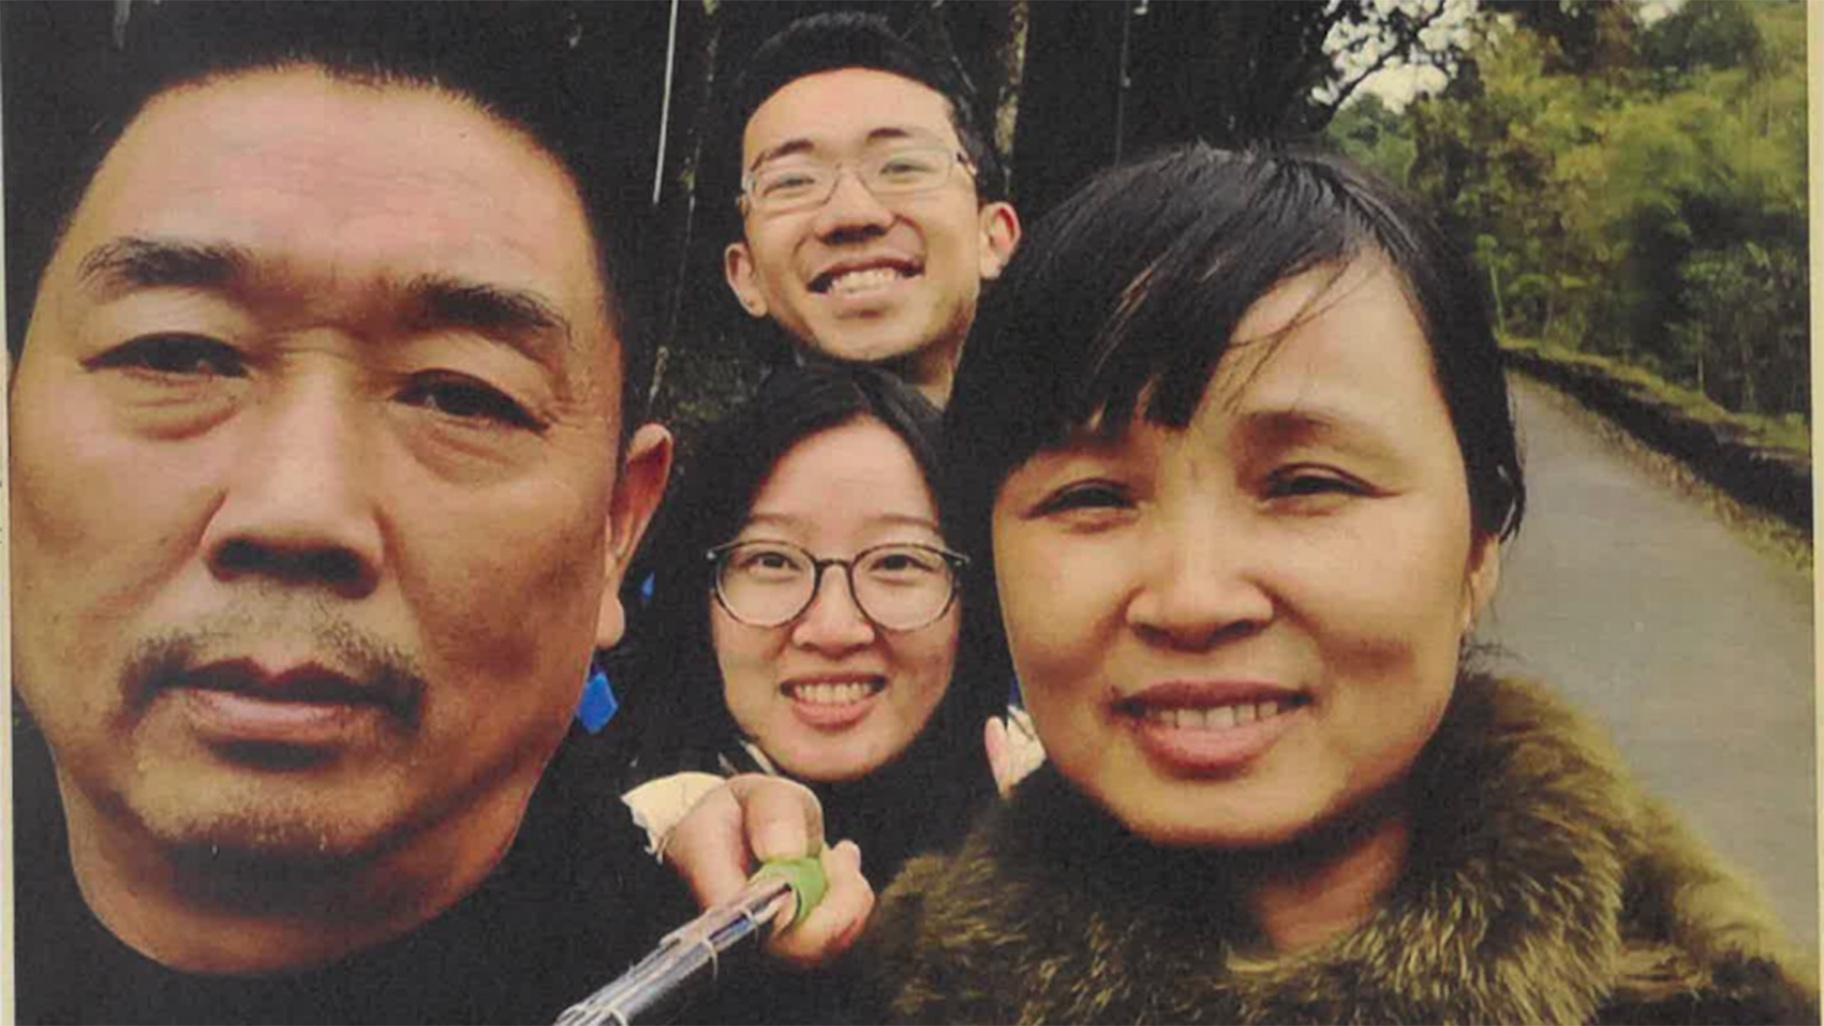 Yingying Zhang, center, takes a photo with her father Ronggao Zhang, left, mother Lifeng Ye and fiance Xiaolin Hou. (U.S. Attorney's Office)